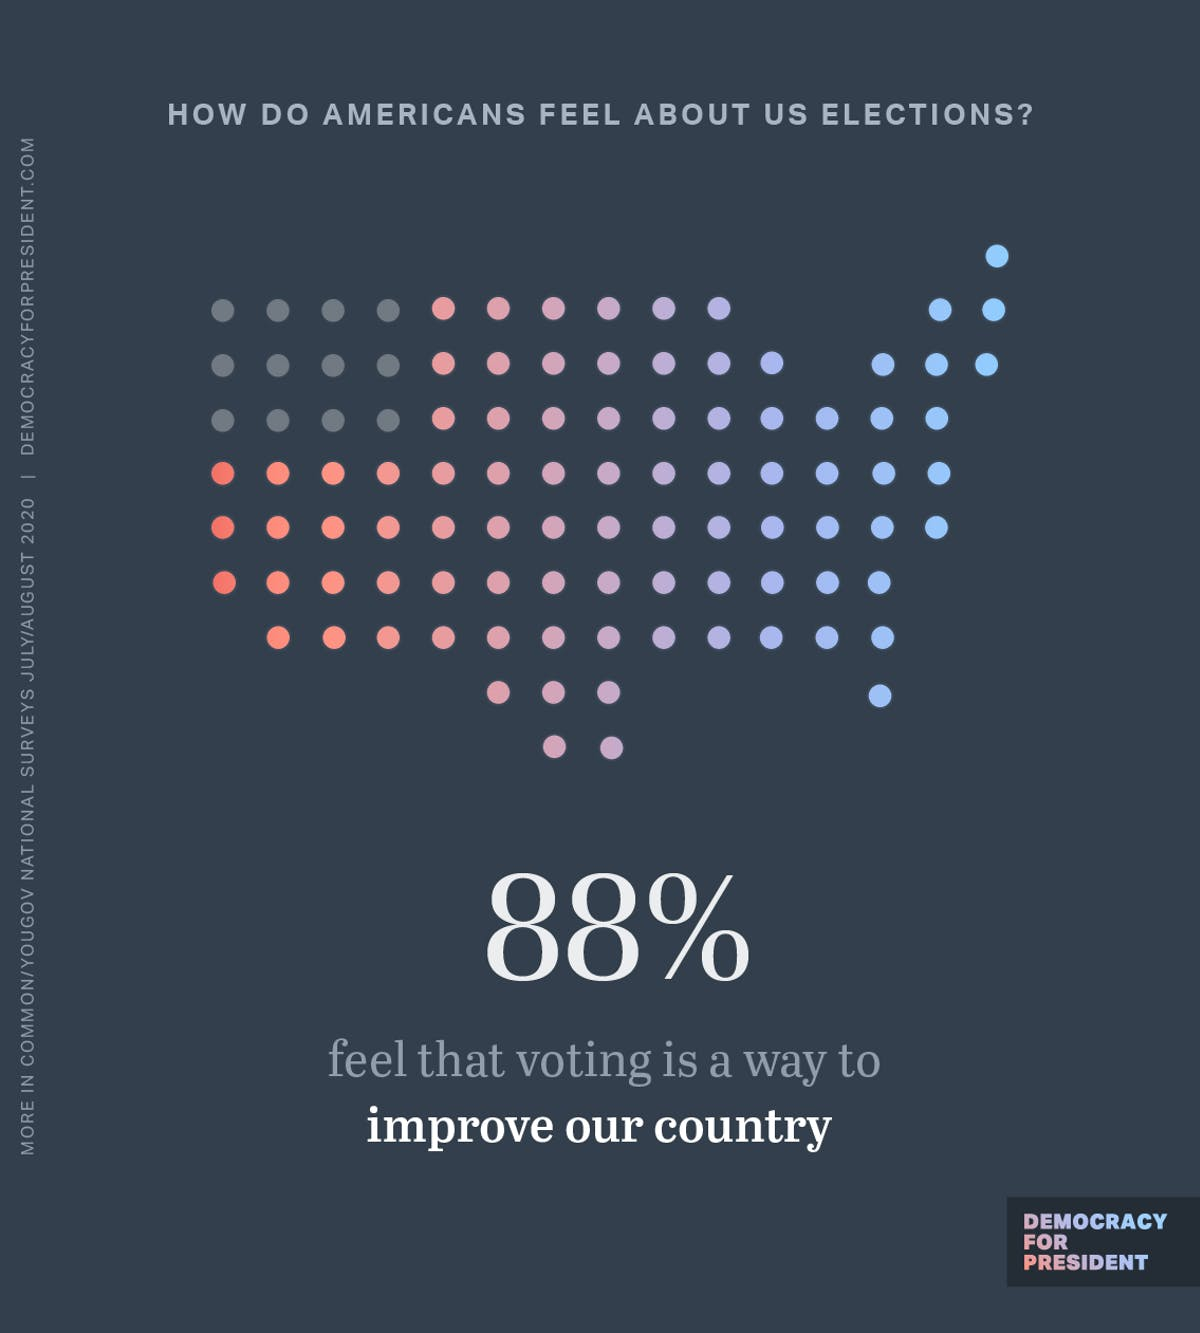 How do Americans feel about U.S. elections? 88% feel that voting is a way to improve our country.